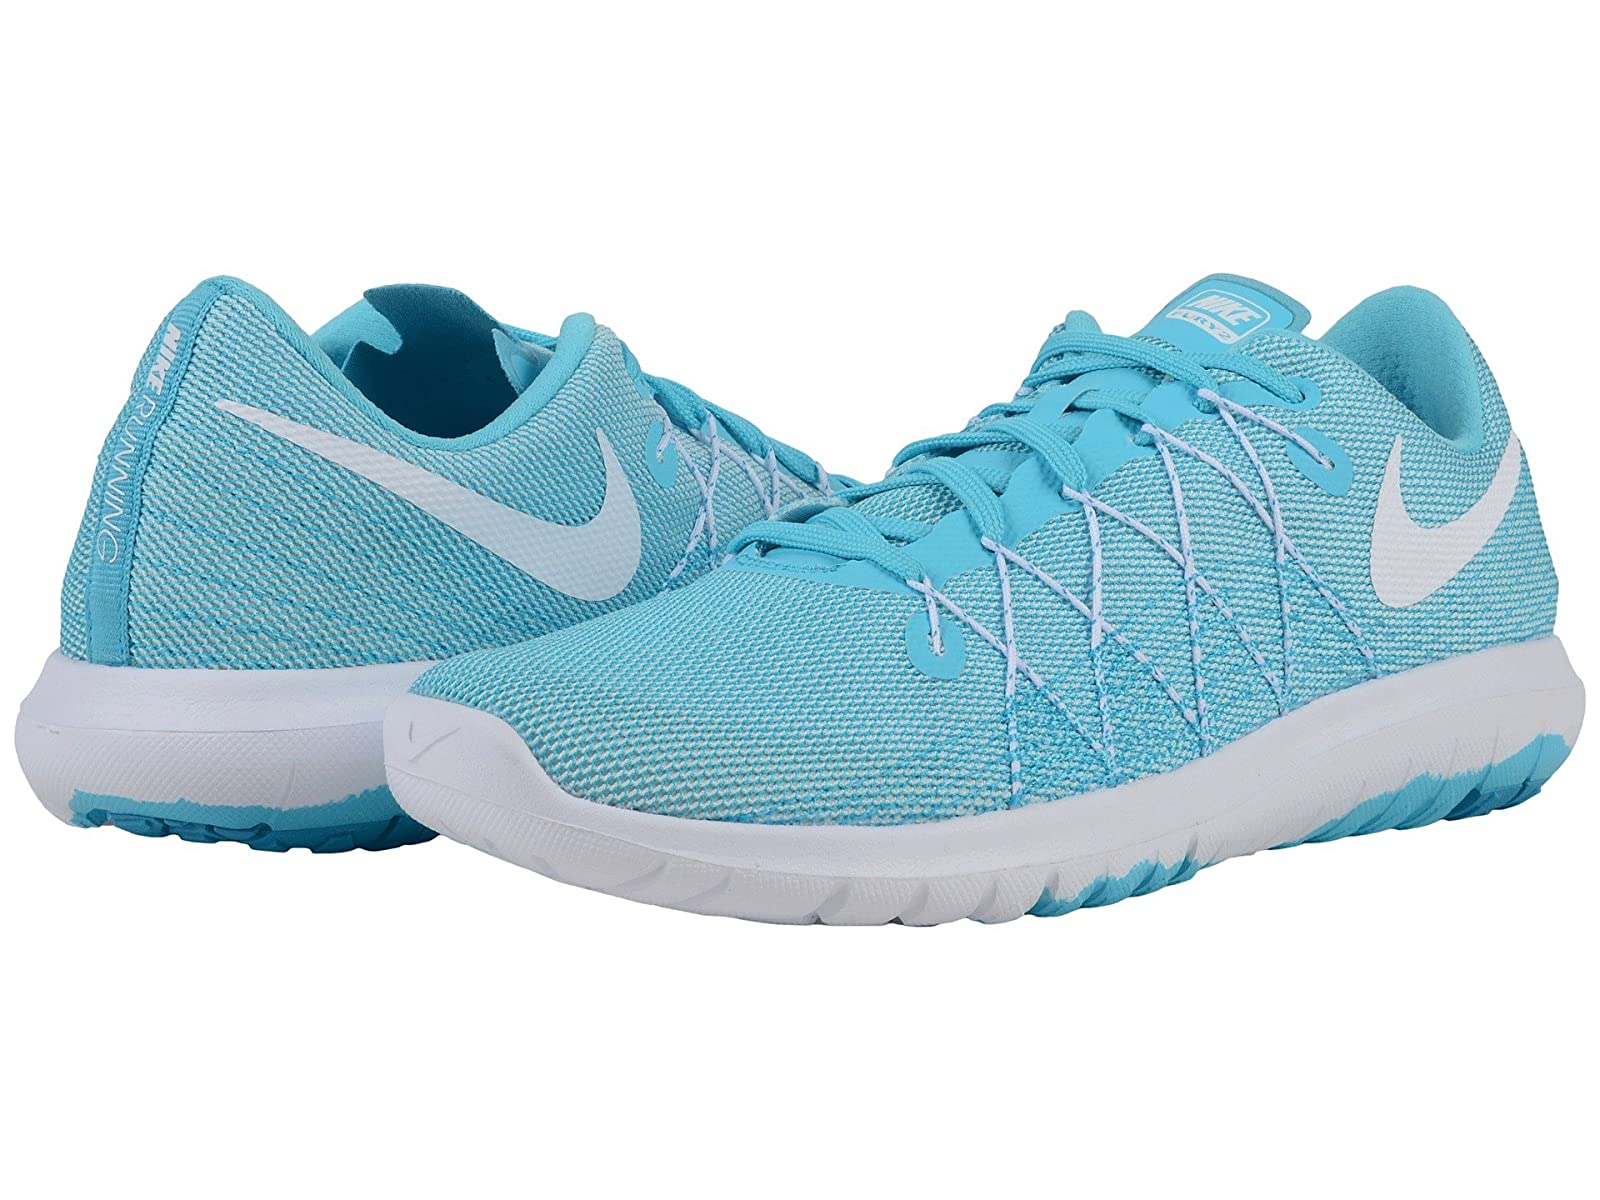 Nike Flex Fury 2Cheap and distinctive eye-catching shoes